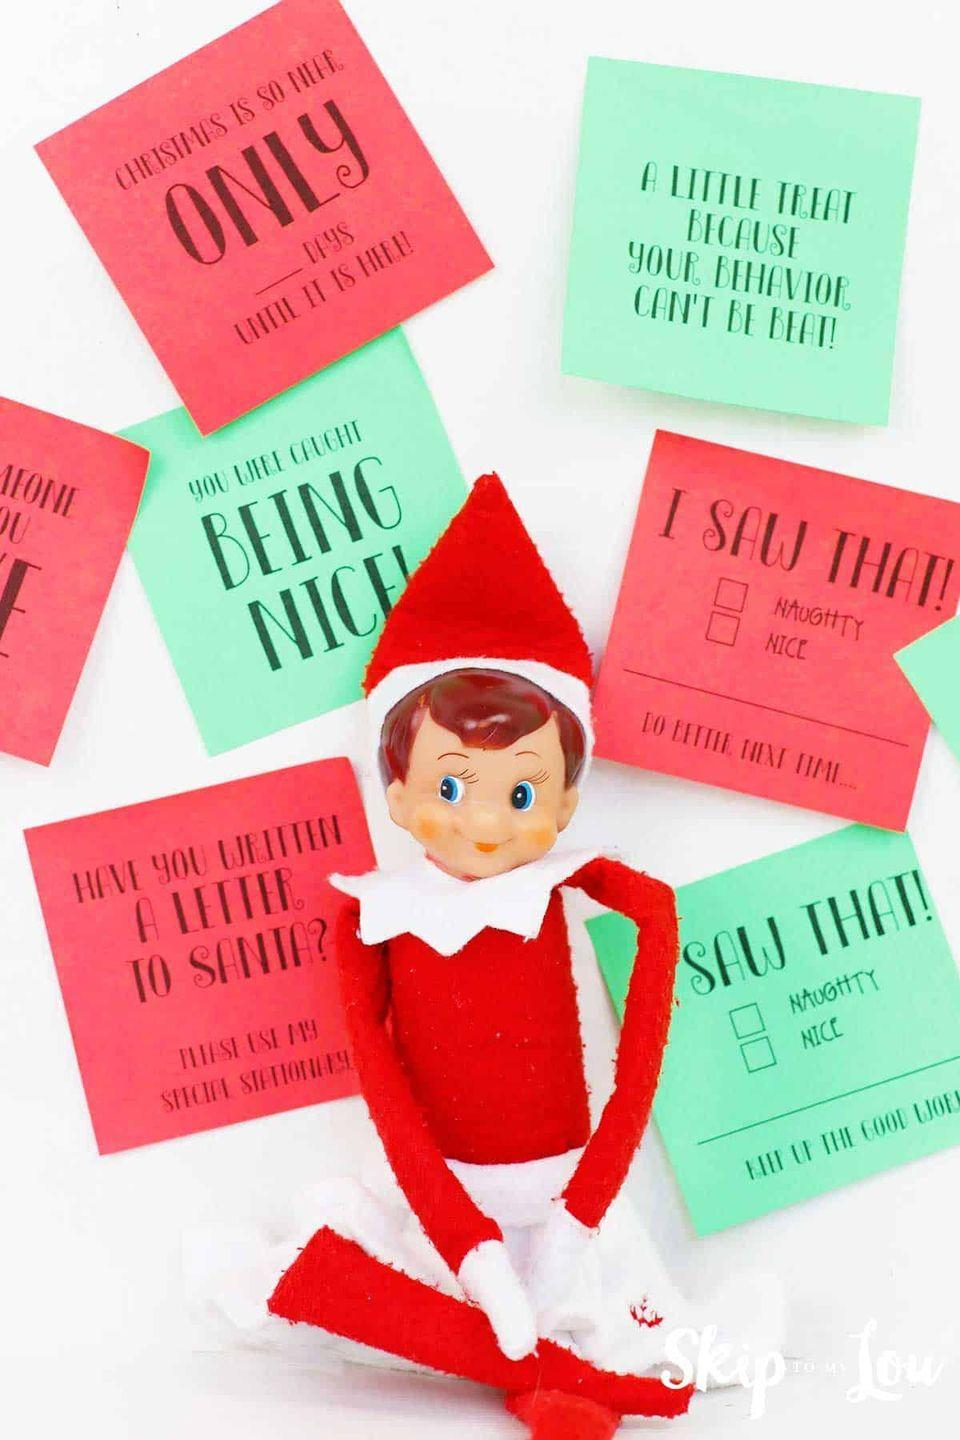 """<p>Need a little help getting into the spirit this year? These printable Elf sticky notes make it so easy to come up with daily ideas of things for your little guy (or gal) to do and say.</p><p><strong>Get the tutorial at <a href=""""https://www.skiptomylou.org/elf-on-the-shelf-notes/"""" rel=""""nofollow noopener"""" target=""""_blank"""" data-ylk=""""slk:Skip to My Lou"""" class=""""link rapid-noclick-resp"""">Skip to My Lou</a>.</strong></p><p><strong><a class=""""link rapid-noclick-resp"""" href=""""https://go.redirectingat.com?id=74968X1596630&url=https%3A%2F%2Fwww.walmart.com%2Fsearch%2F%3Fquery%3Delf%2Bon%2Bthe%2Bshelf&sref=https%3A%2F%2Fwww.thepioneerwoman.com%2Fholidays-celebrations%2Fg34080491%2Ffunny-elf-on-the-shelf-ideas%2F"""" rel=""""nofollow noopener"""" target=""""_blank"""" data-ylk=""""slk:SHOP ELF ON THE SHELF"""">SHOP ELF ON THE SHELF</a><br></strong></p>"""